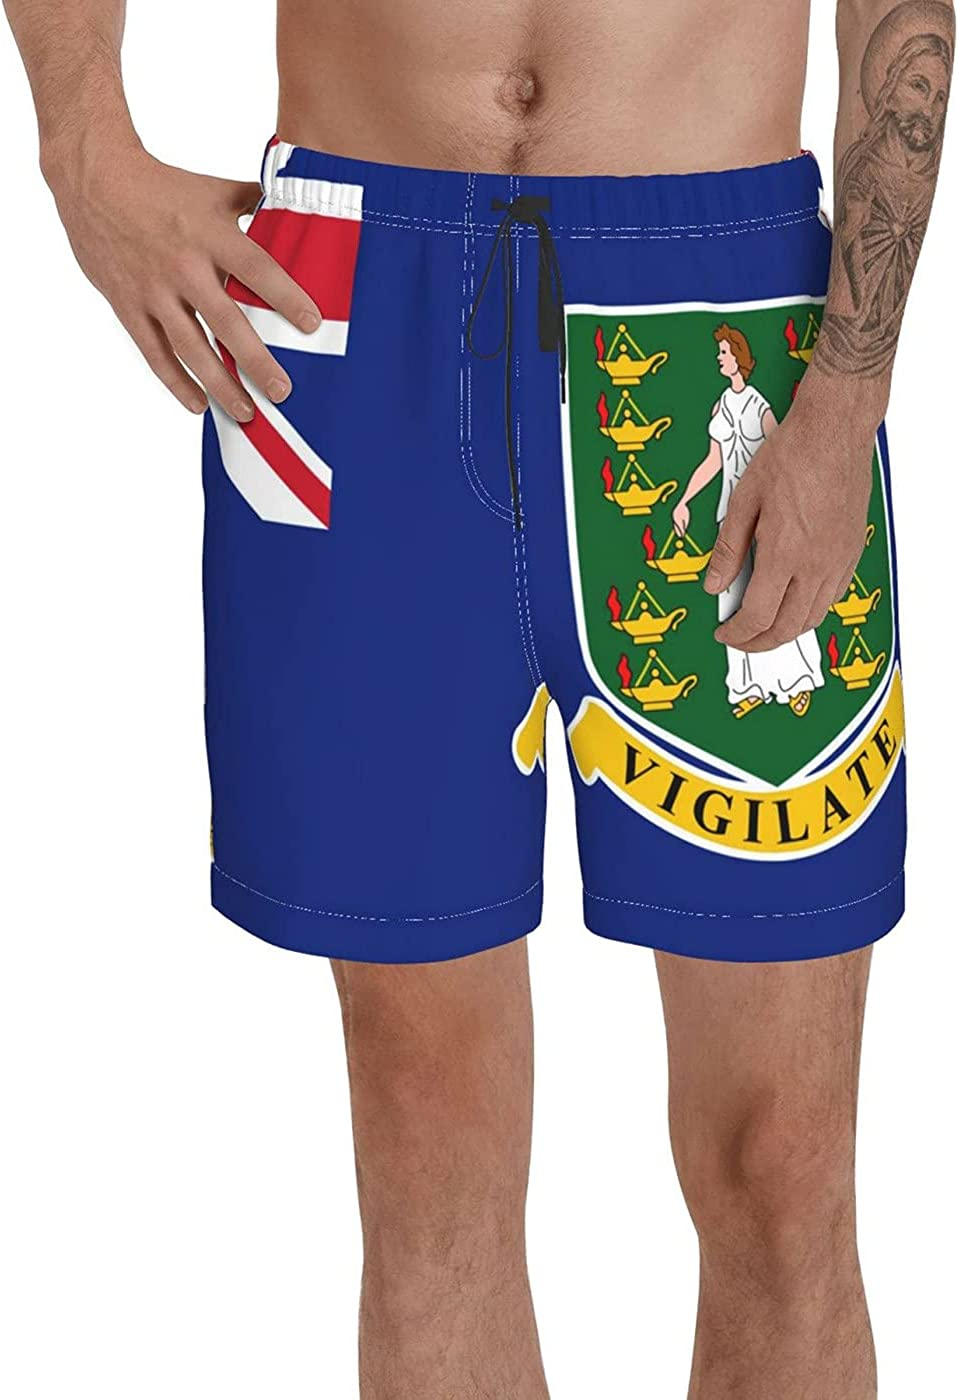 Count British Virgin Islands Flag Men's 3D Printed Funny Summer Quick Dry Swim Short Board Shorts with